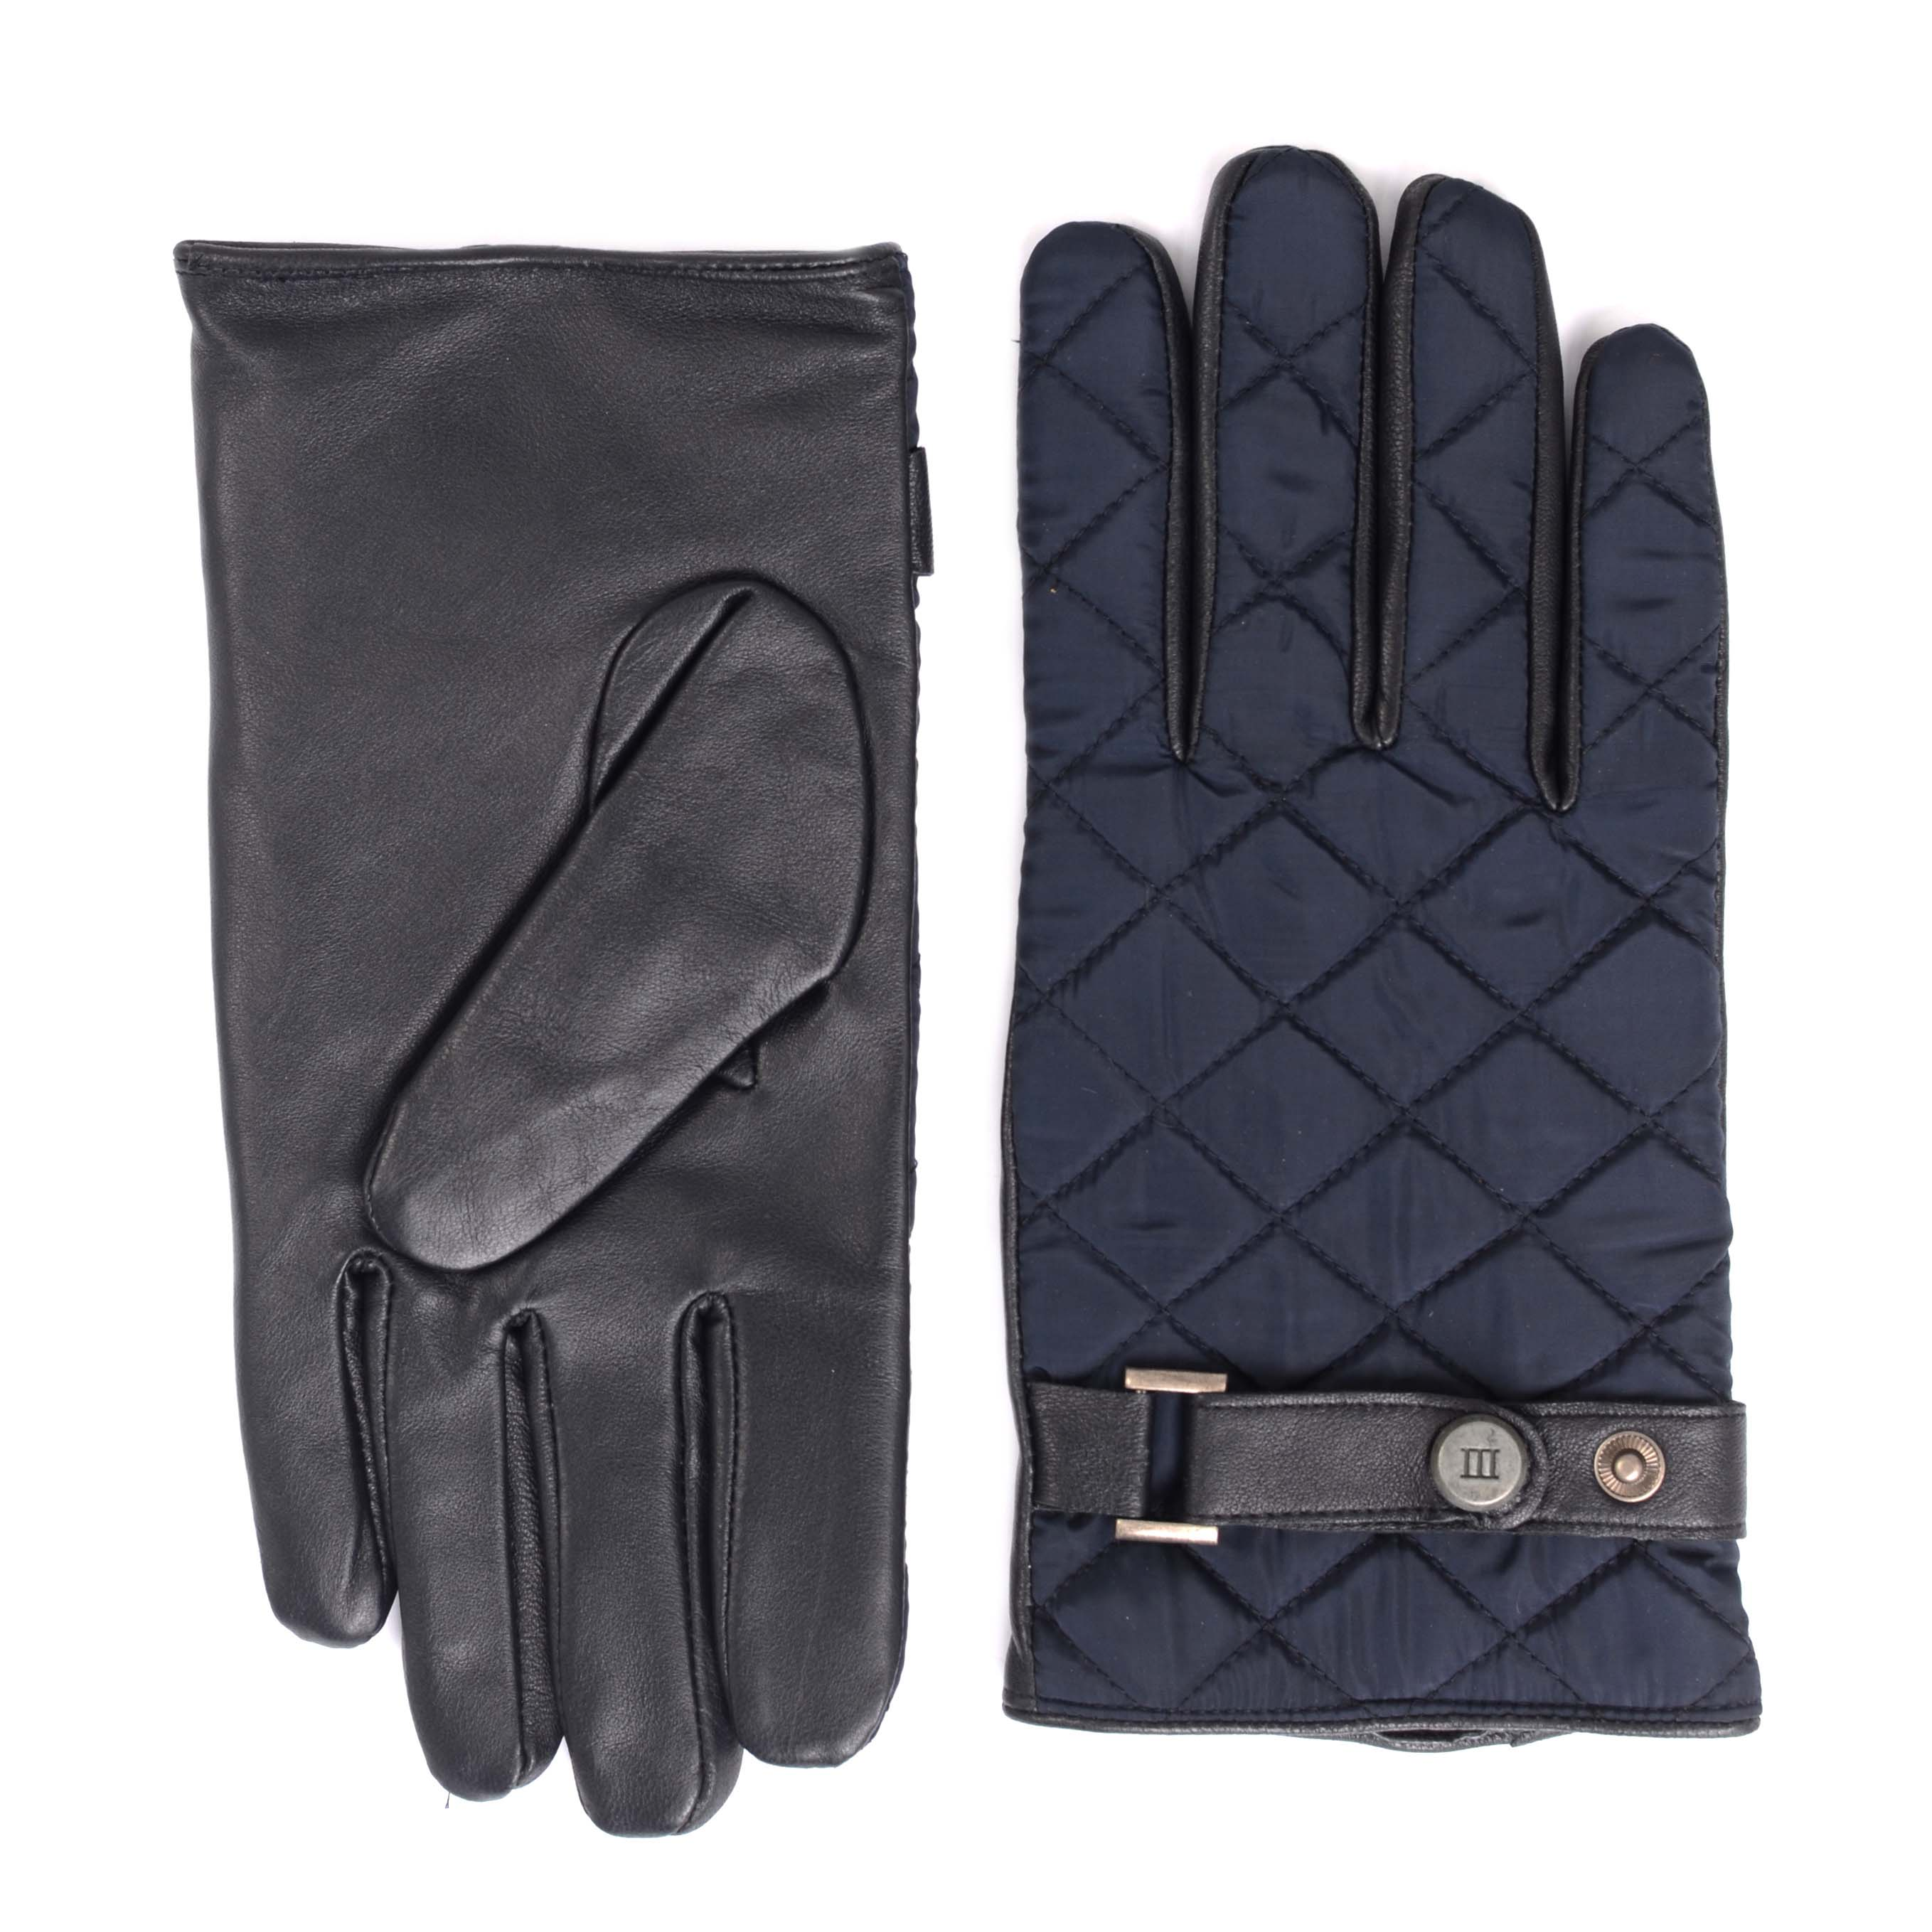 Navy sheepleather gloves with matelasse nylon back